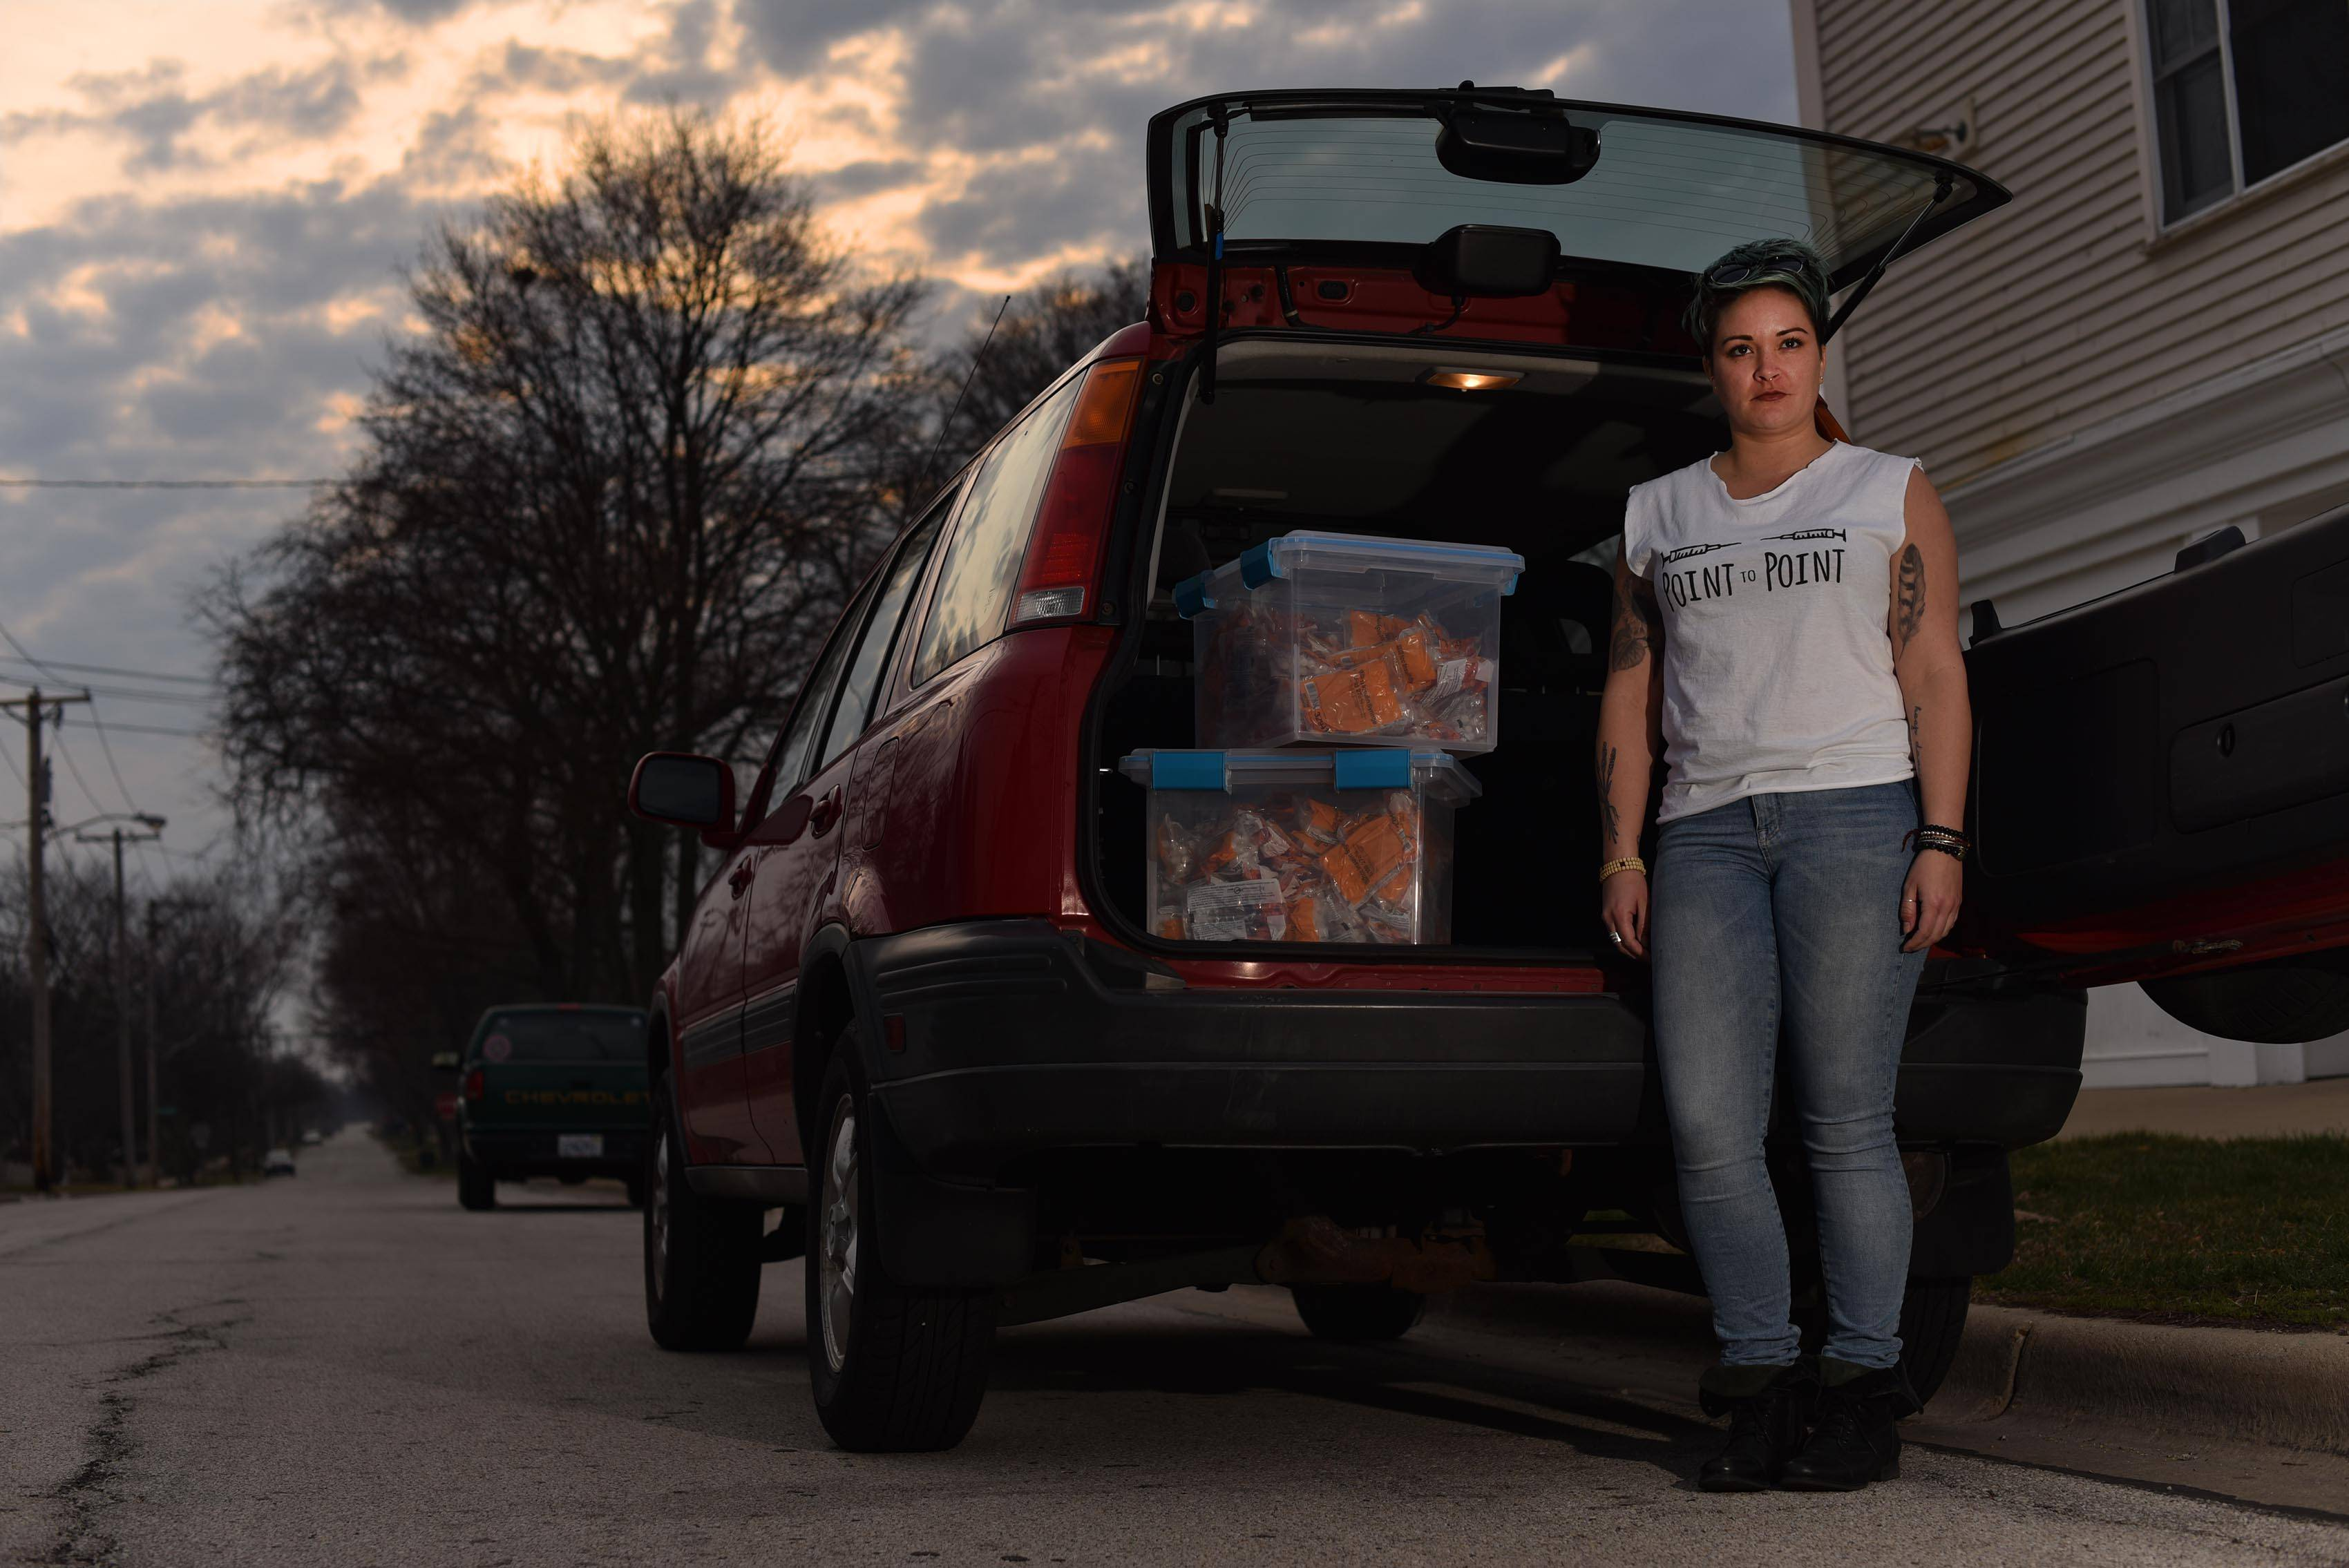 Lyndsay Hartman decided to start a needle exchange program and provide free naloxone in the suburbs.